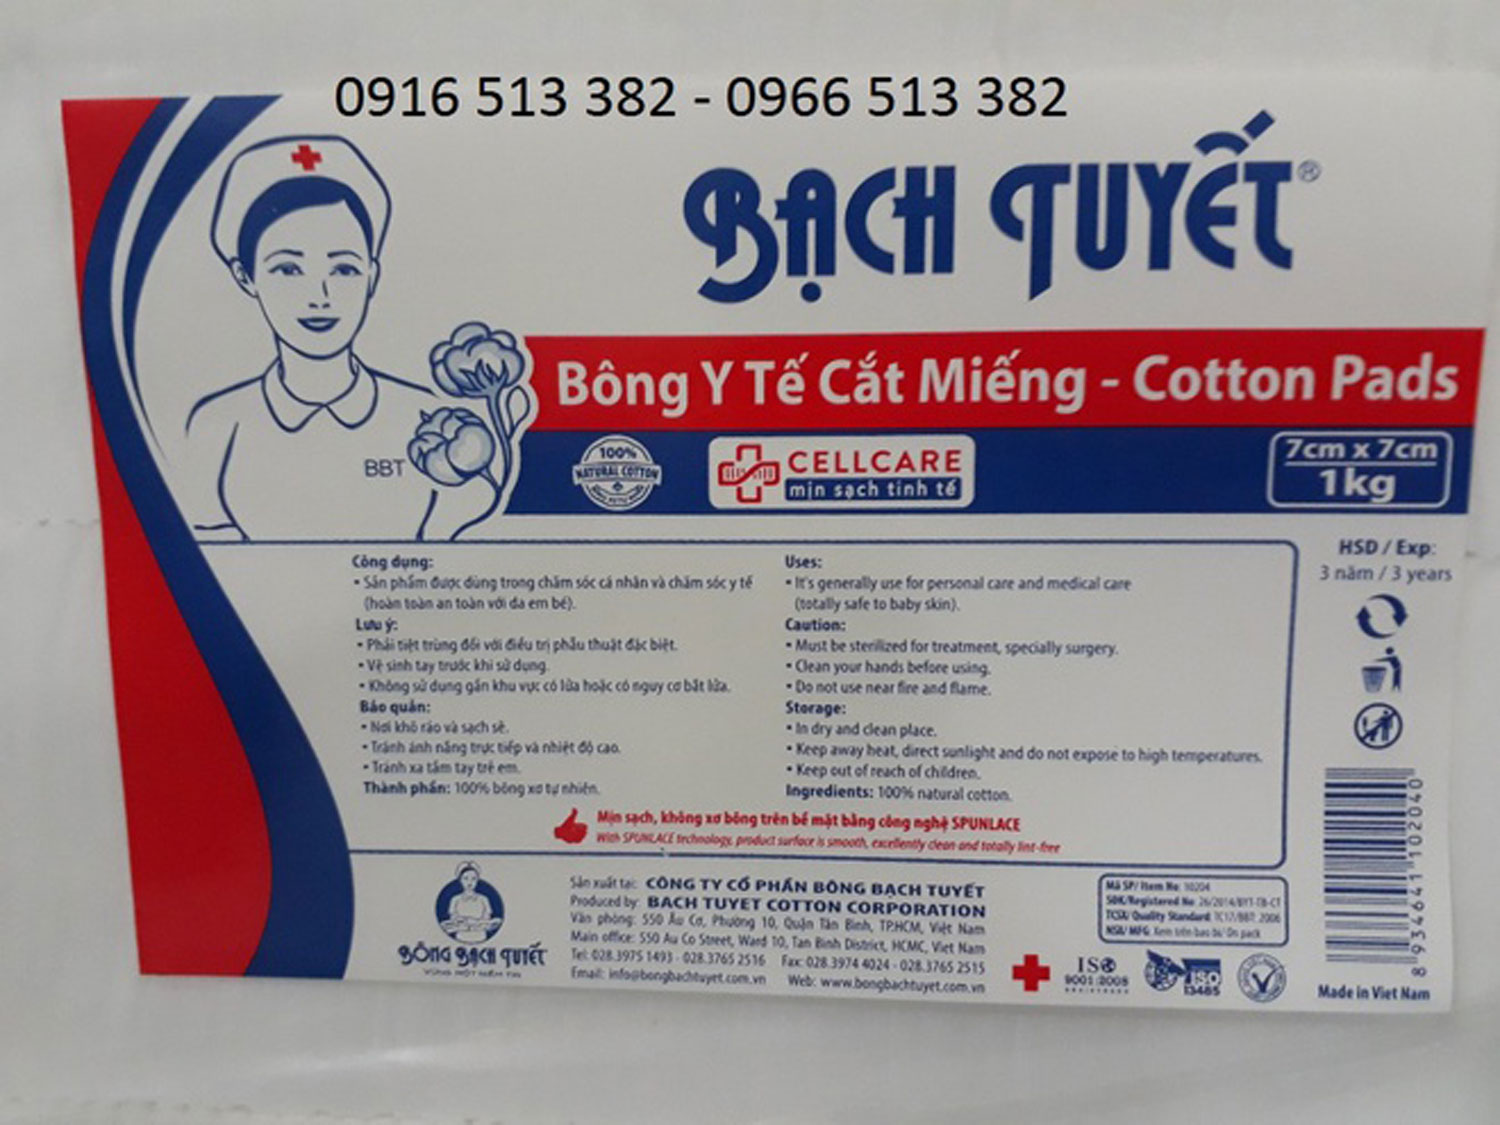 Shareholders of Bong Bach Tuyet Corporation triple the profit upon returning after 9 years of leaving the stock exchange.